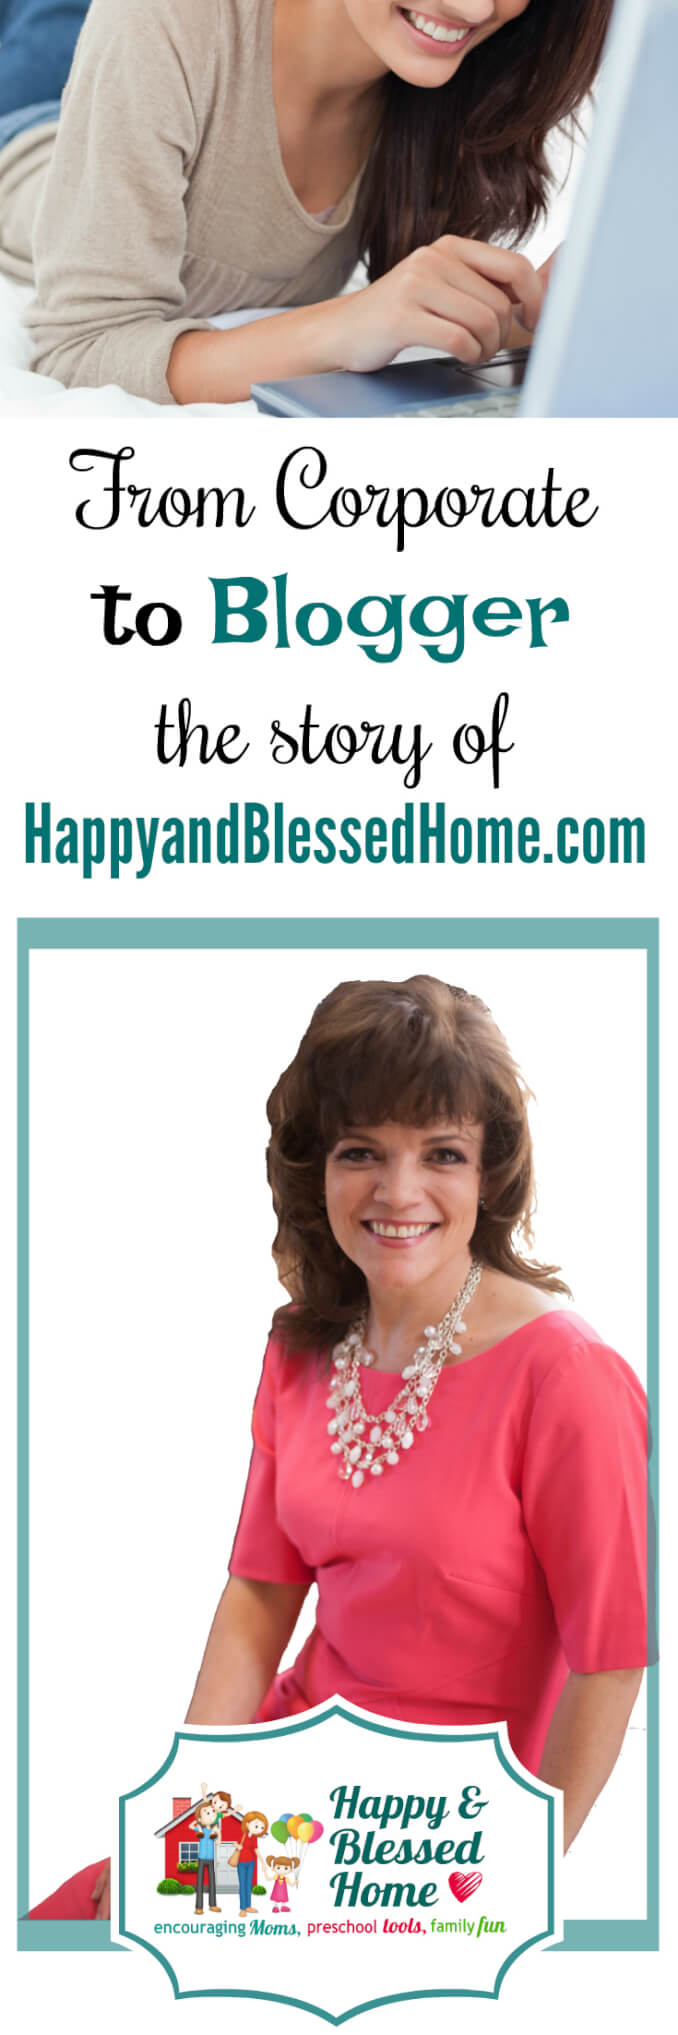 From Corporate Executive to Blogger - How HappyandBlessedHome.com Got It's Name - One woman's journey from suits to a preemie baby.